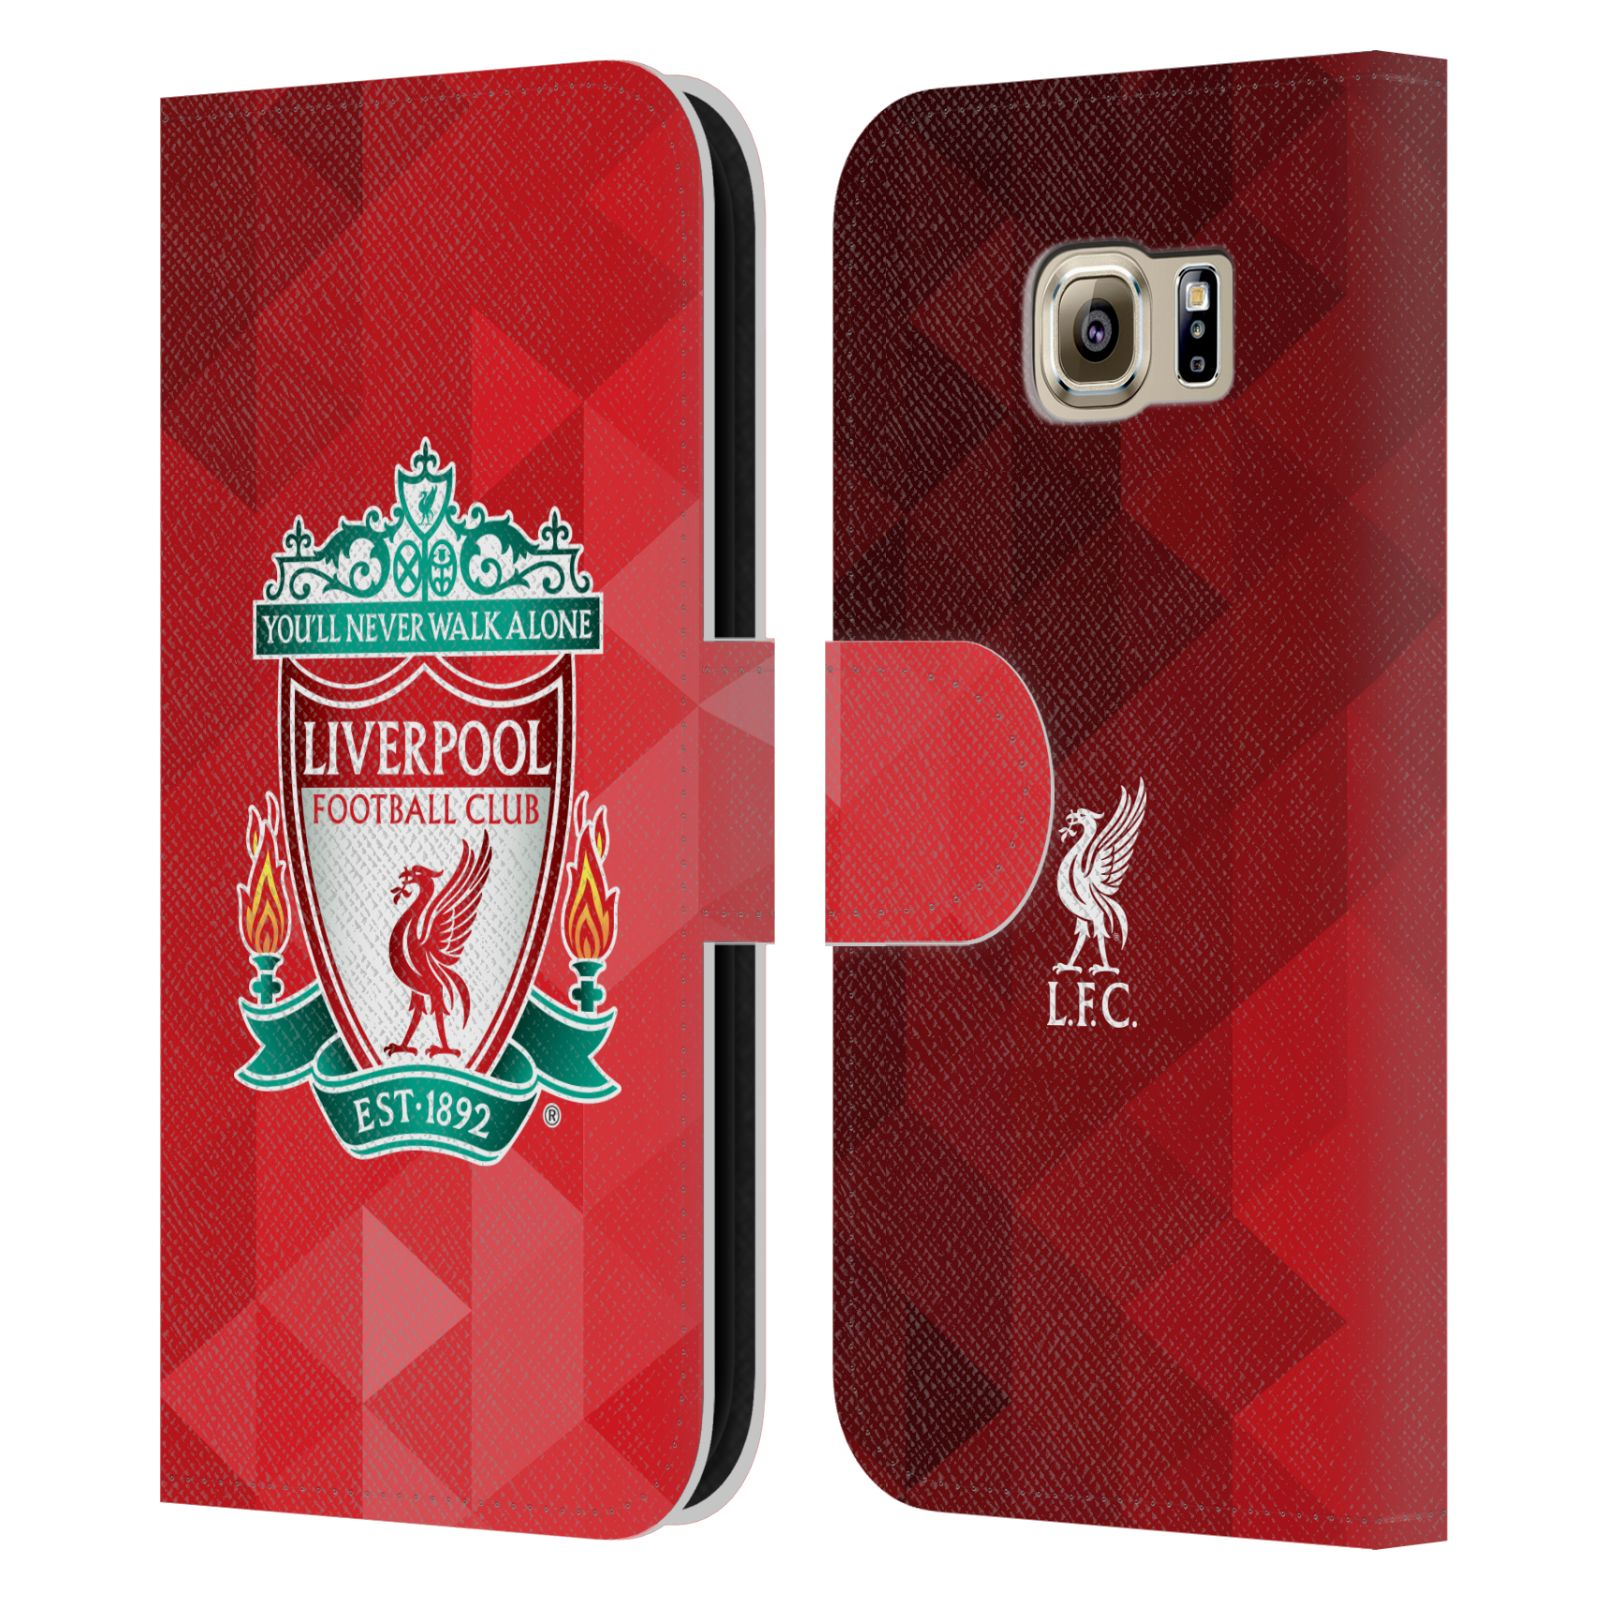 samsung s8 liverpool phone case